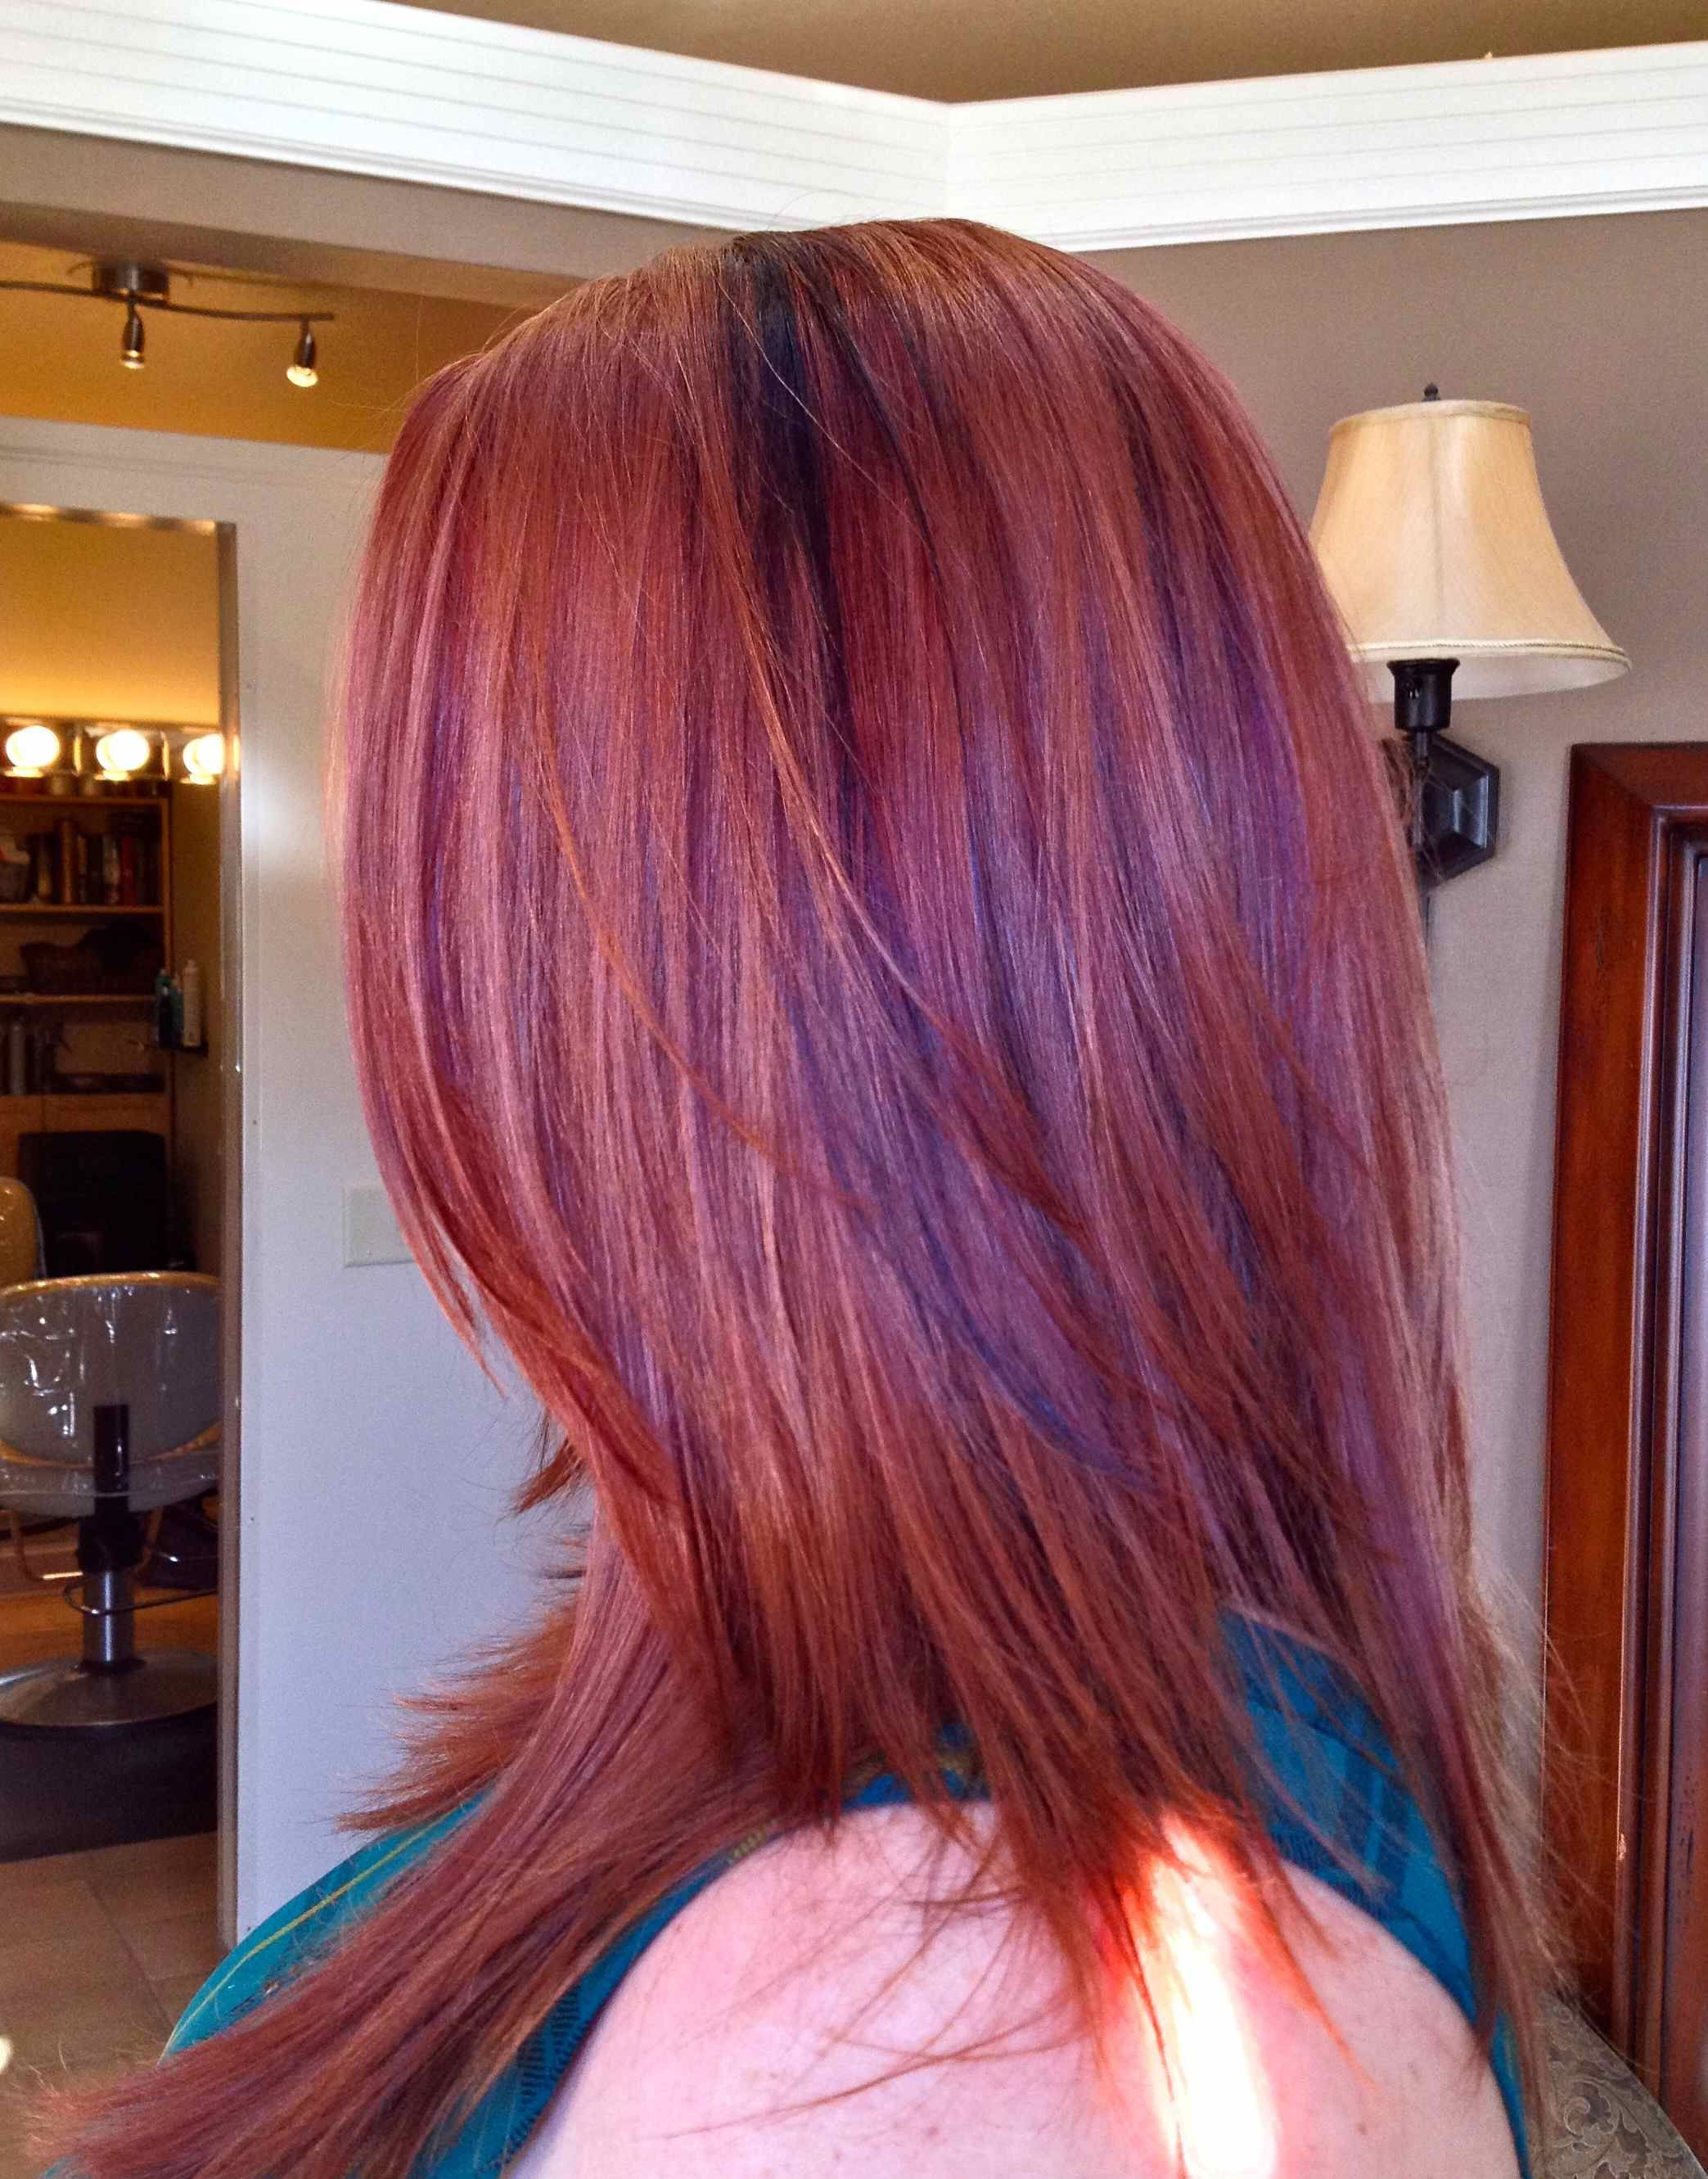 photos blonde hair with purple foils of androids hd edgy color ideas for vibrant red and highlights